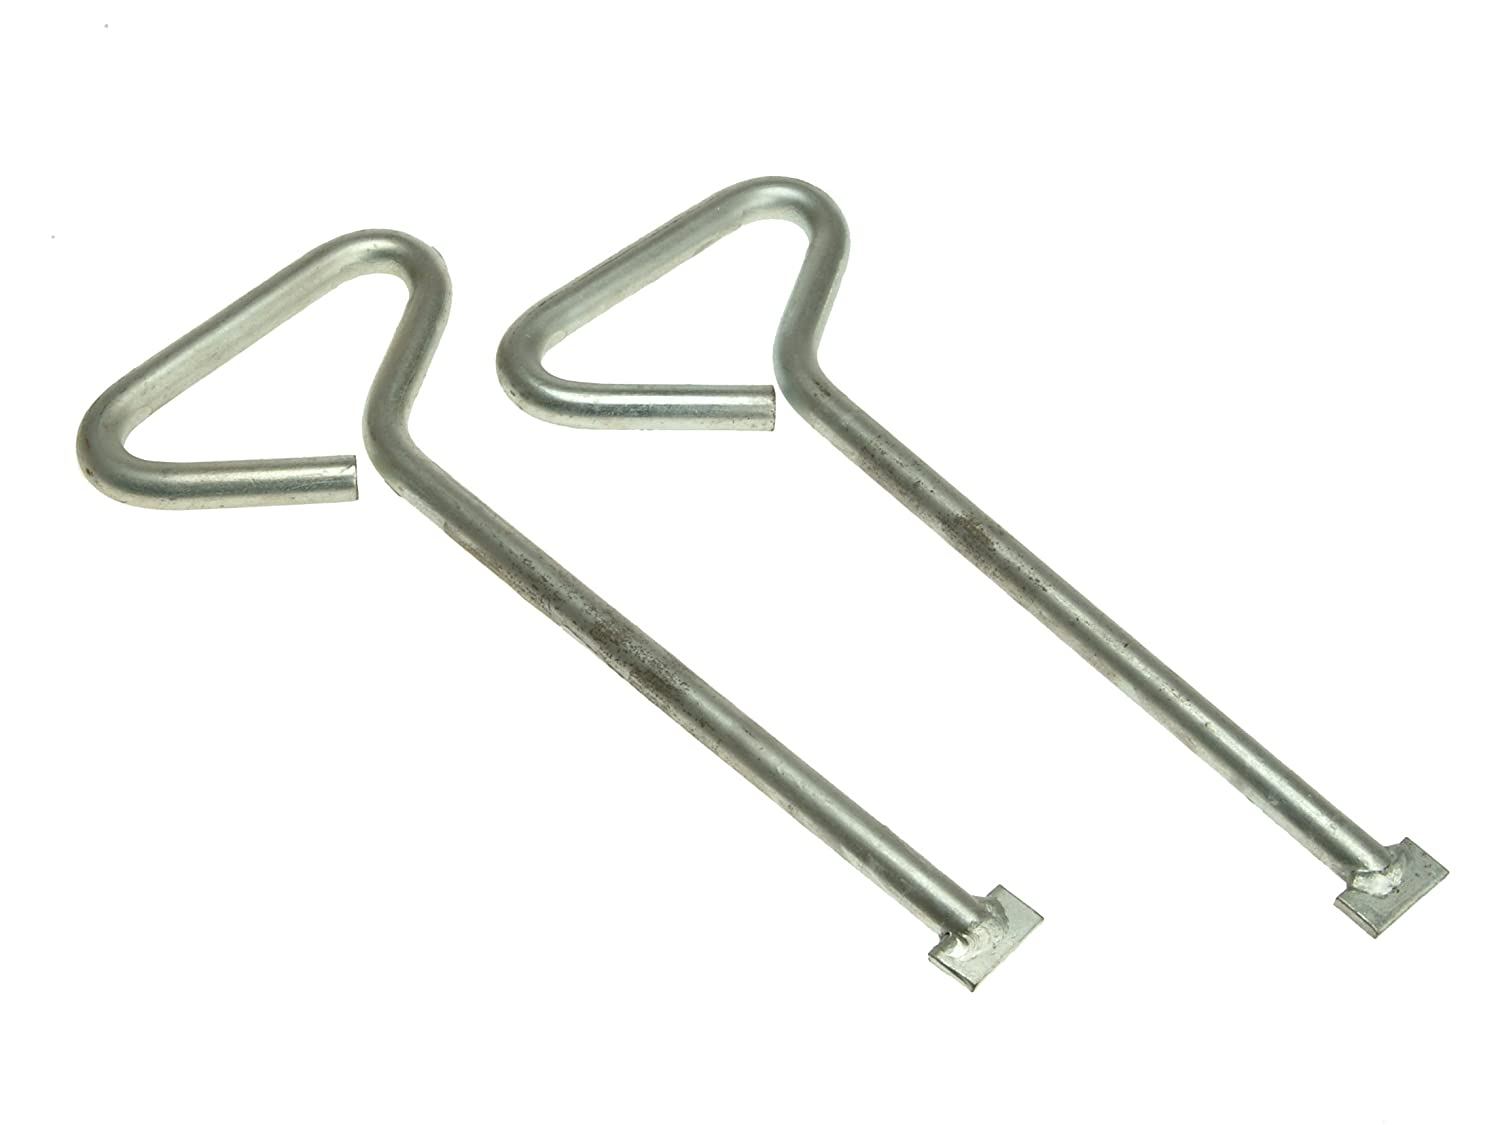 2 x Manhole Cover Lift Keys (Pack of 2) - 12in Monument